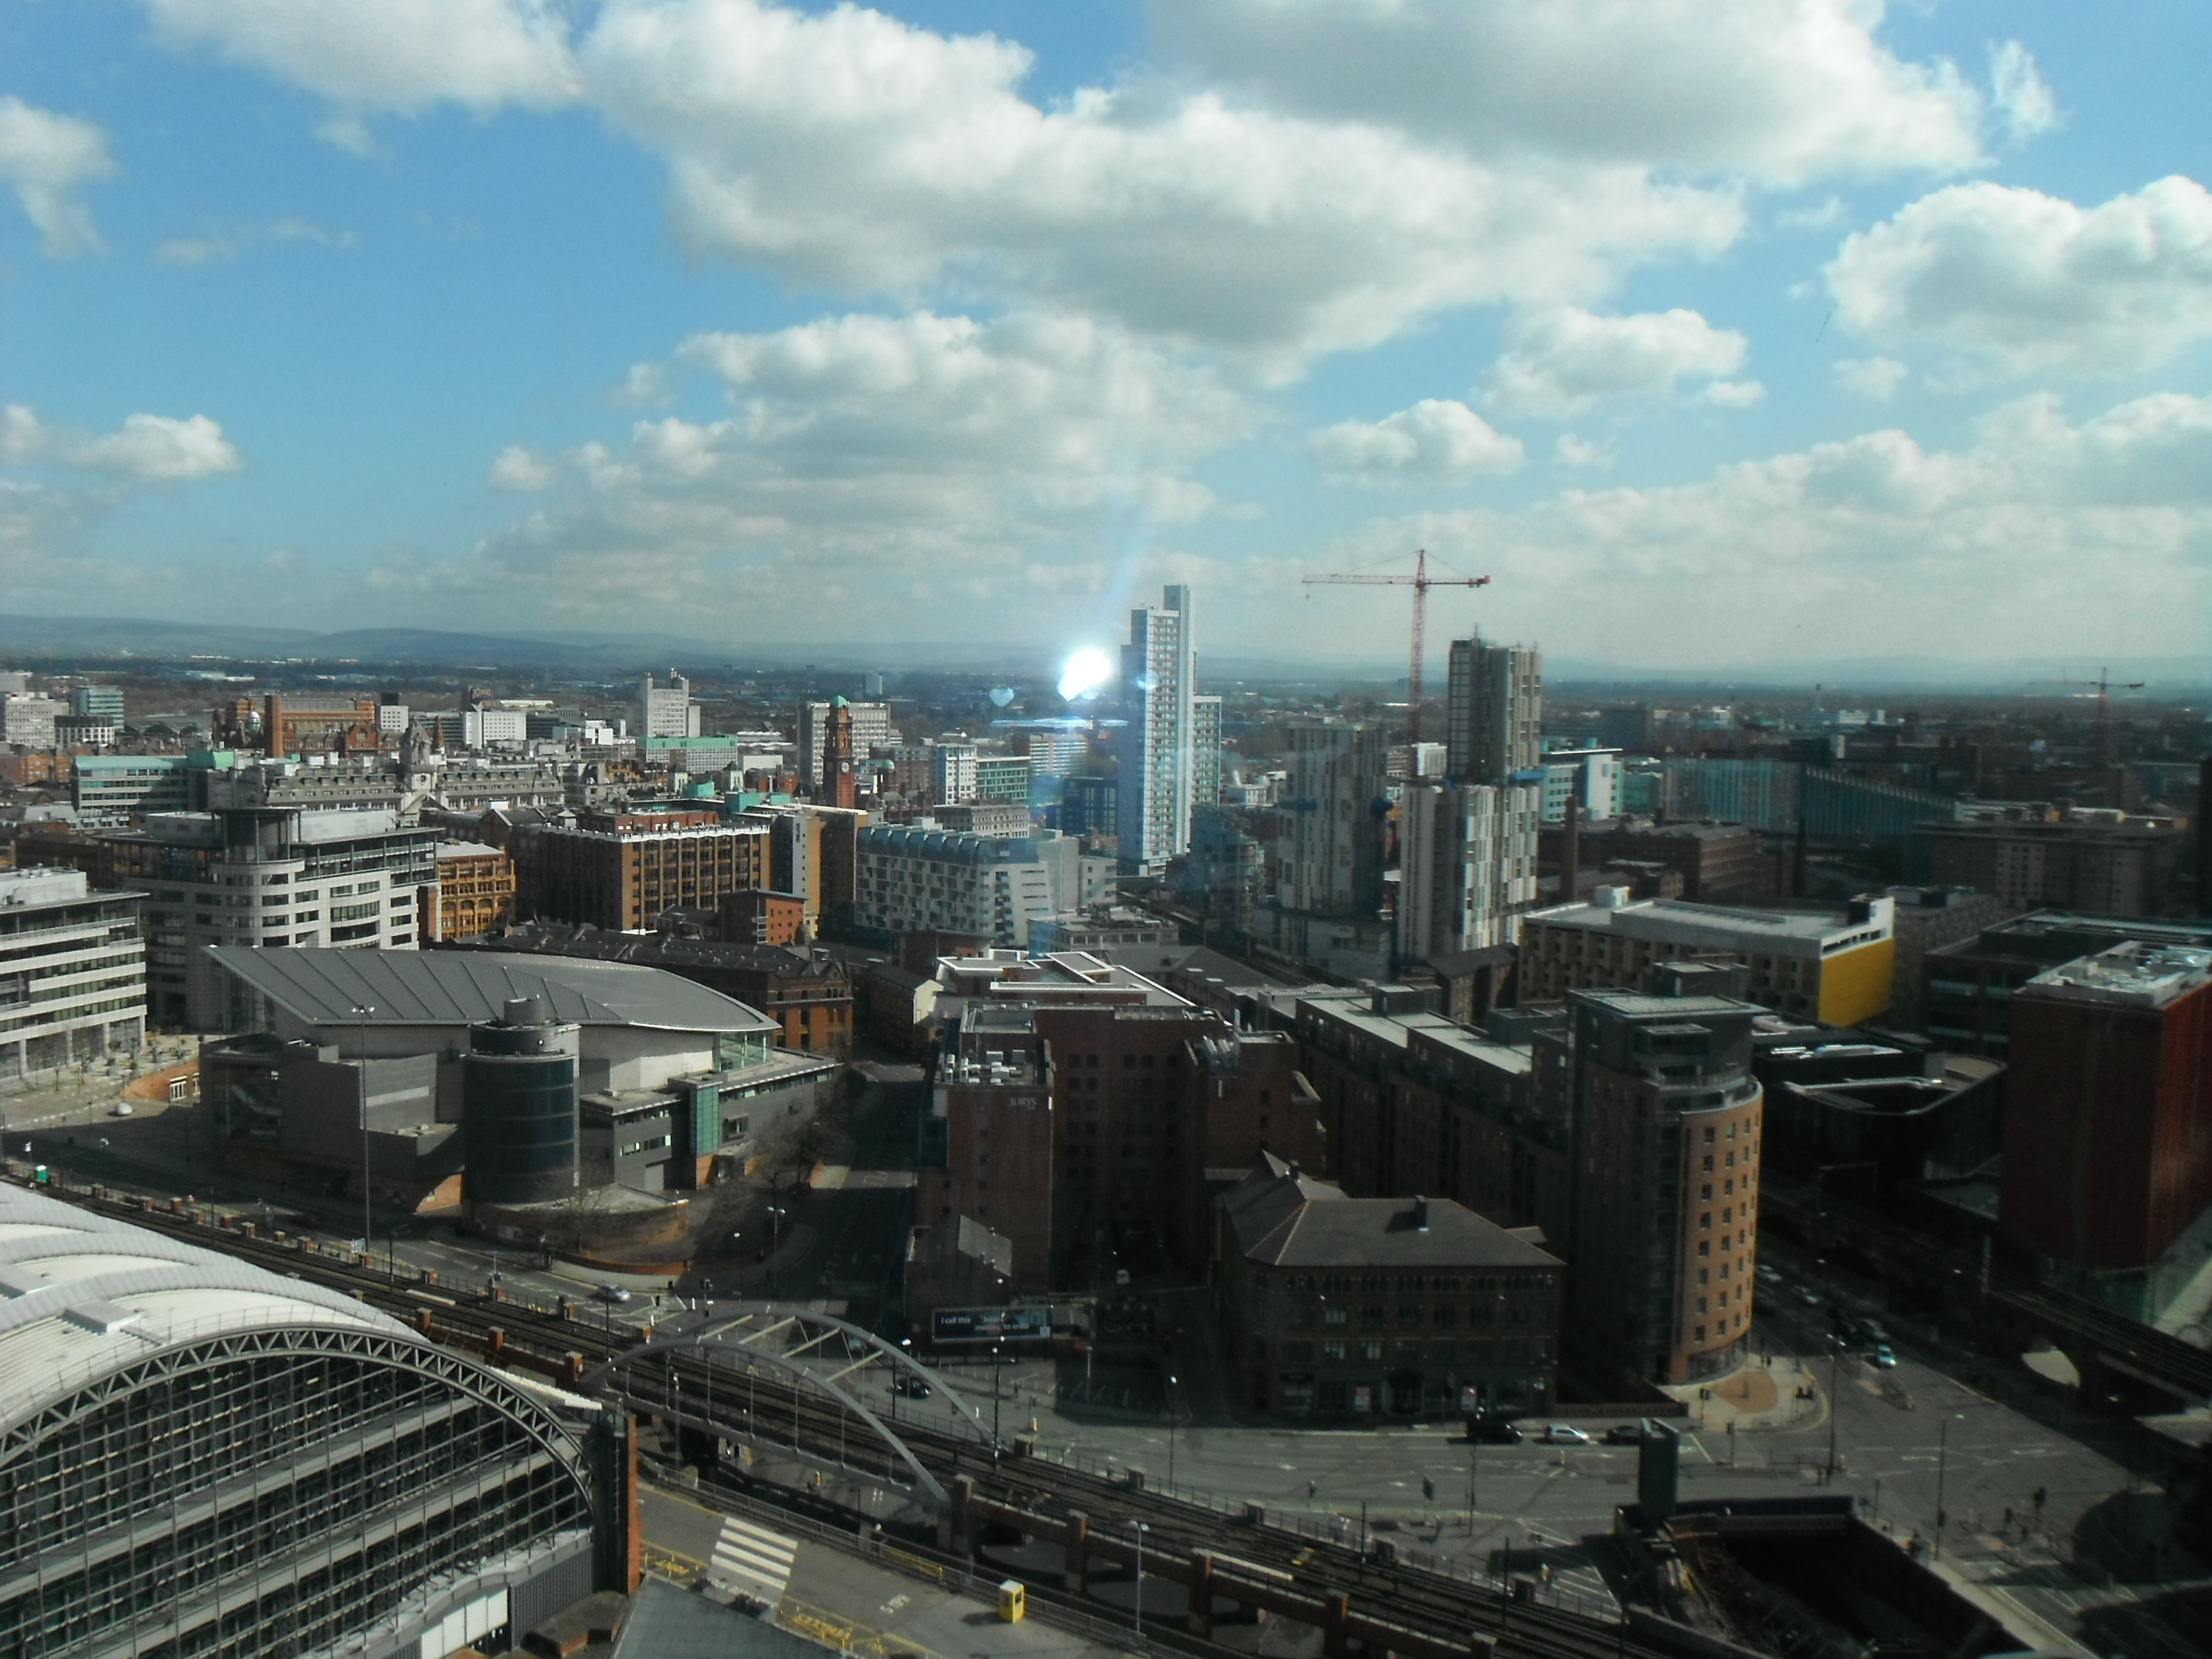 Photo taken by me – A view from The Beetham Hotel